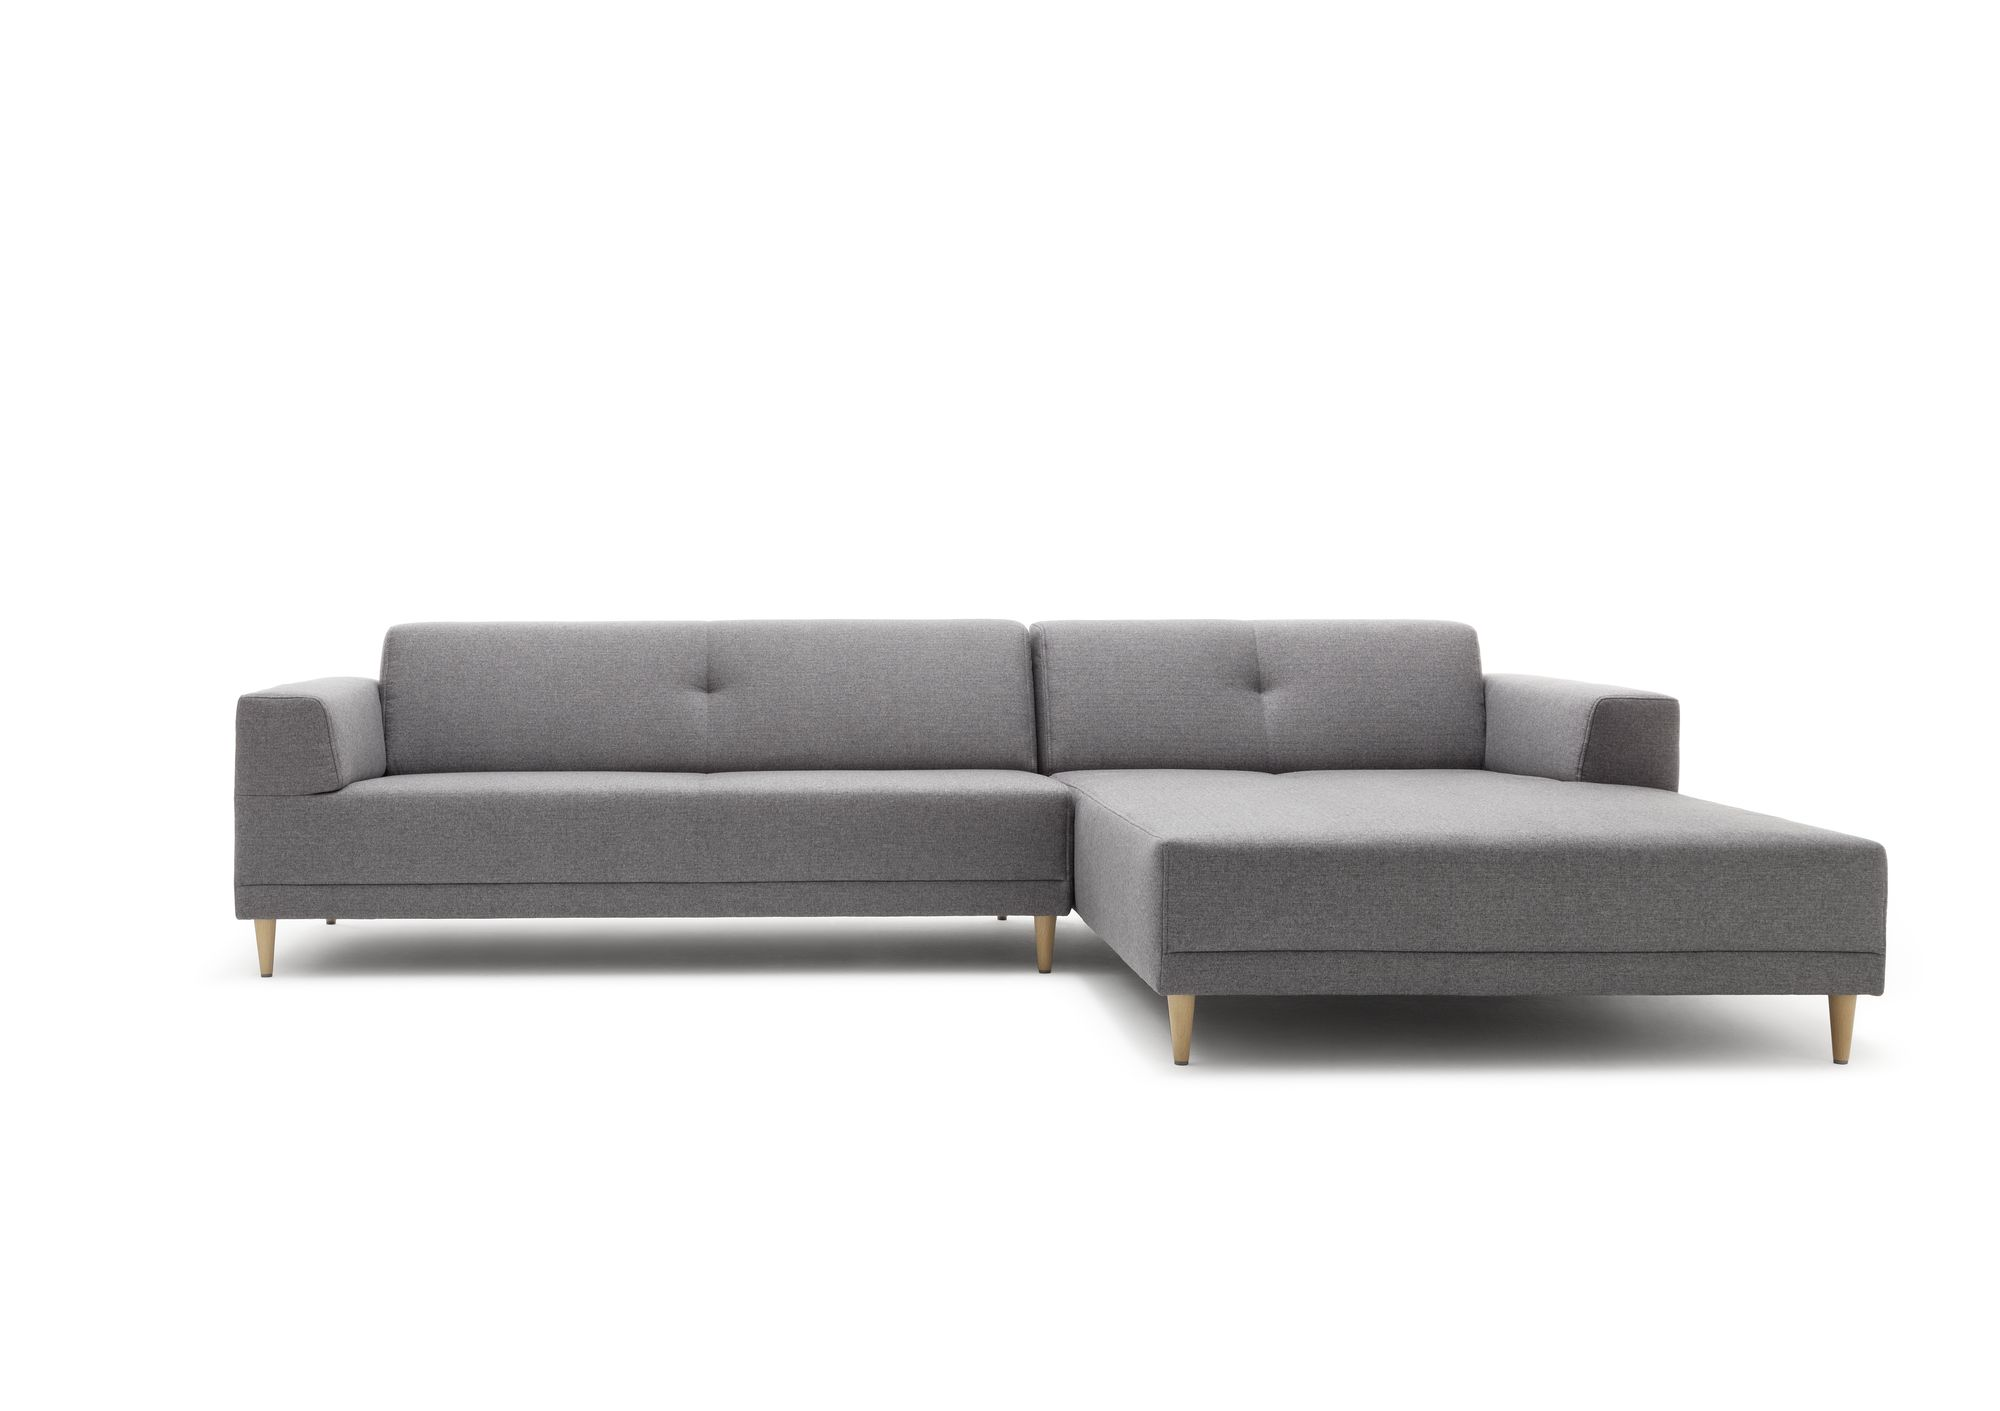 Freistil 189 rolf benz sofa mit recamiere in stoff for Couch 0 finanzierung